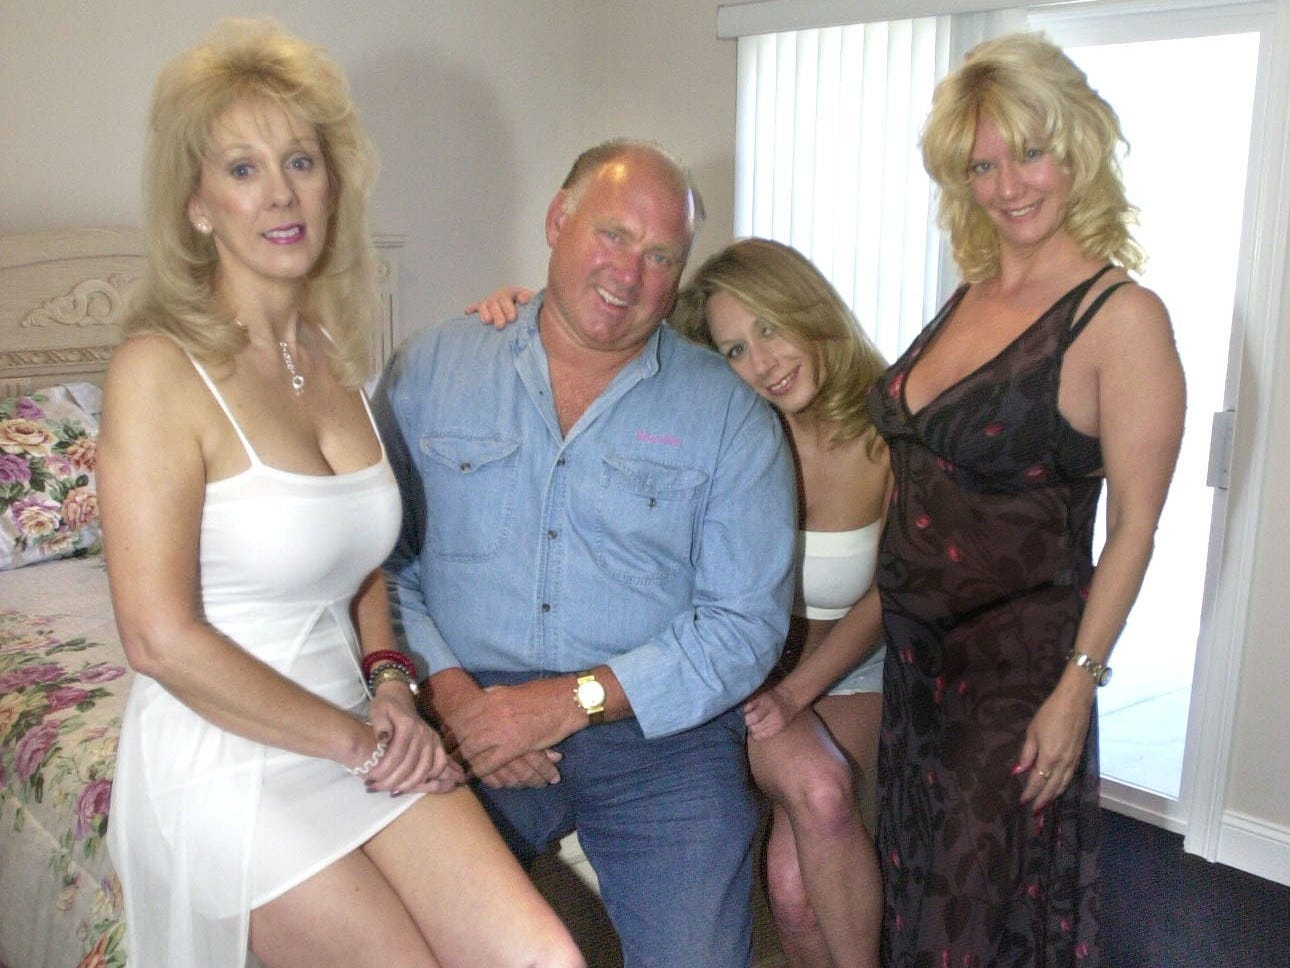 Photo by Lisa J. Tolda...Dennis Hof poses with some of his girls at the Moonlite ((Do not change. It is now Moonlite; look at Dennis' shirt.) Bunnyranch in Mound House.**digital**